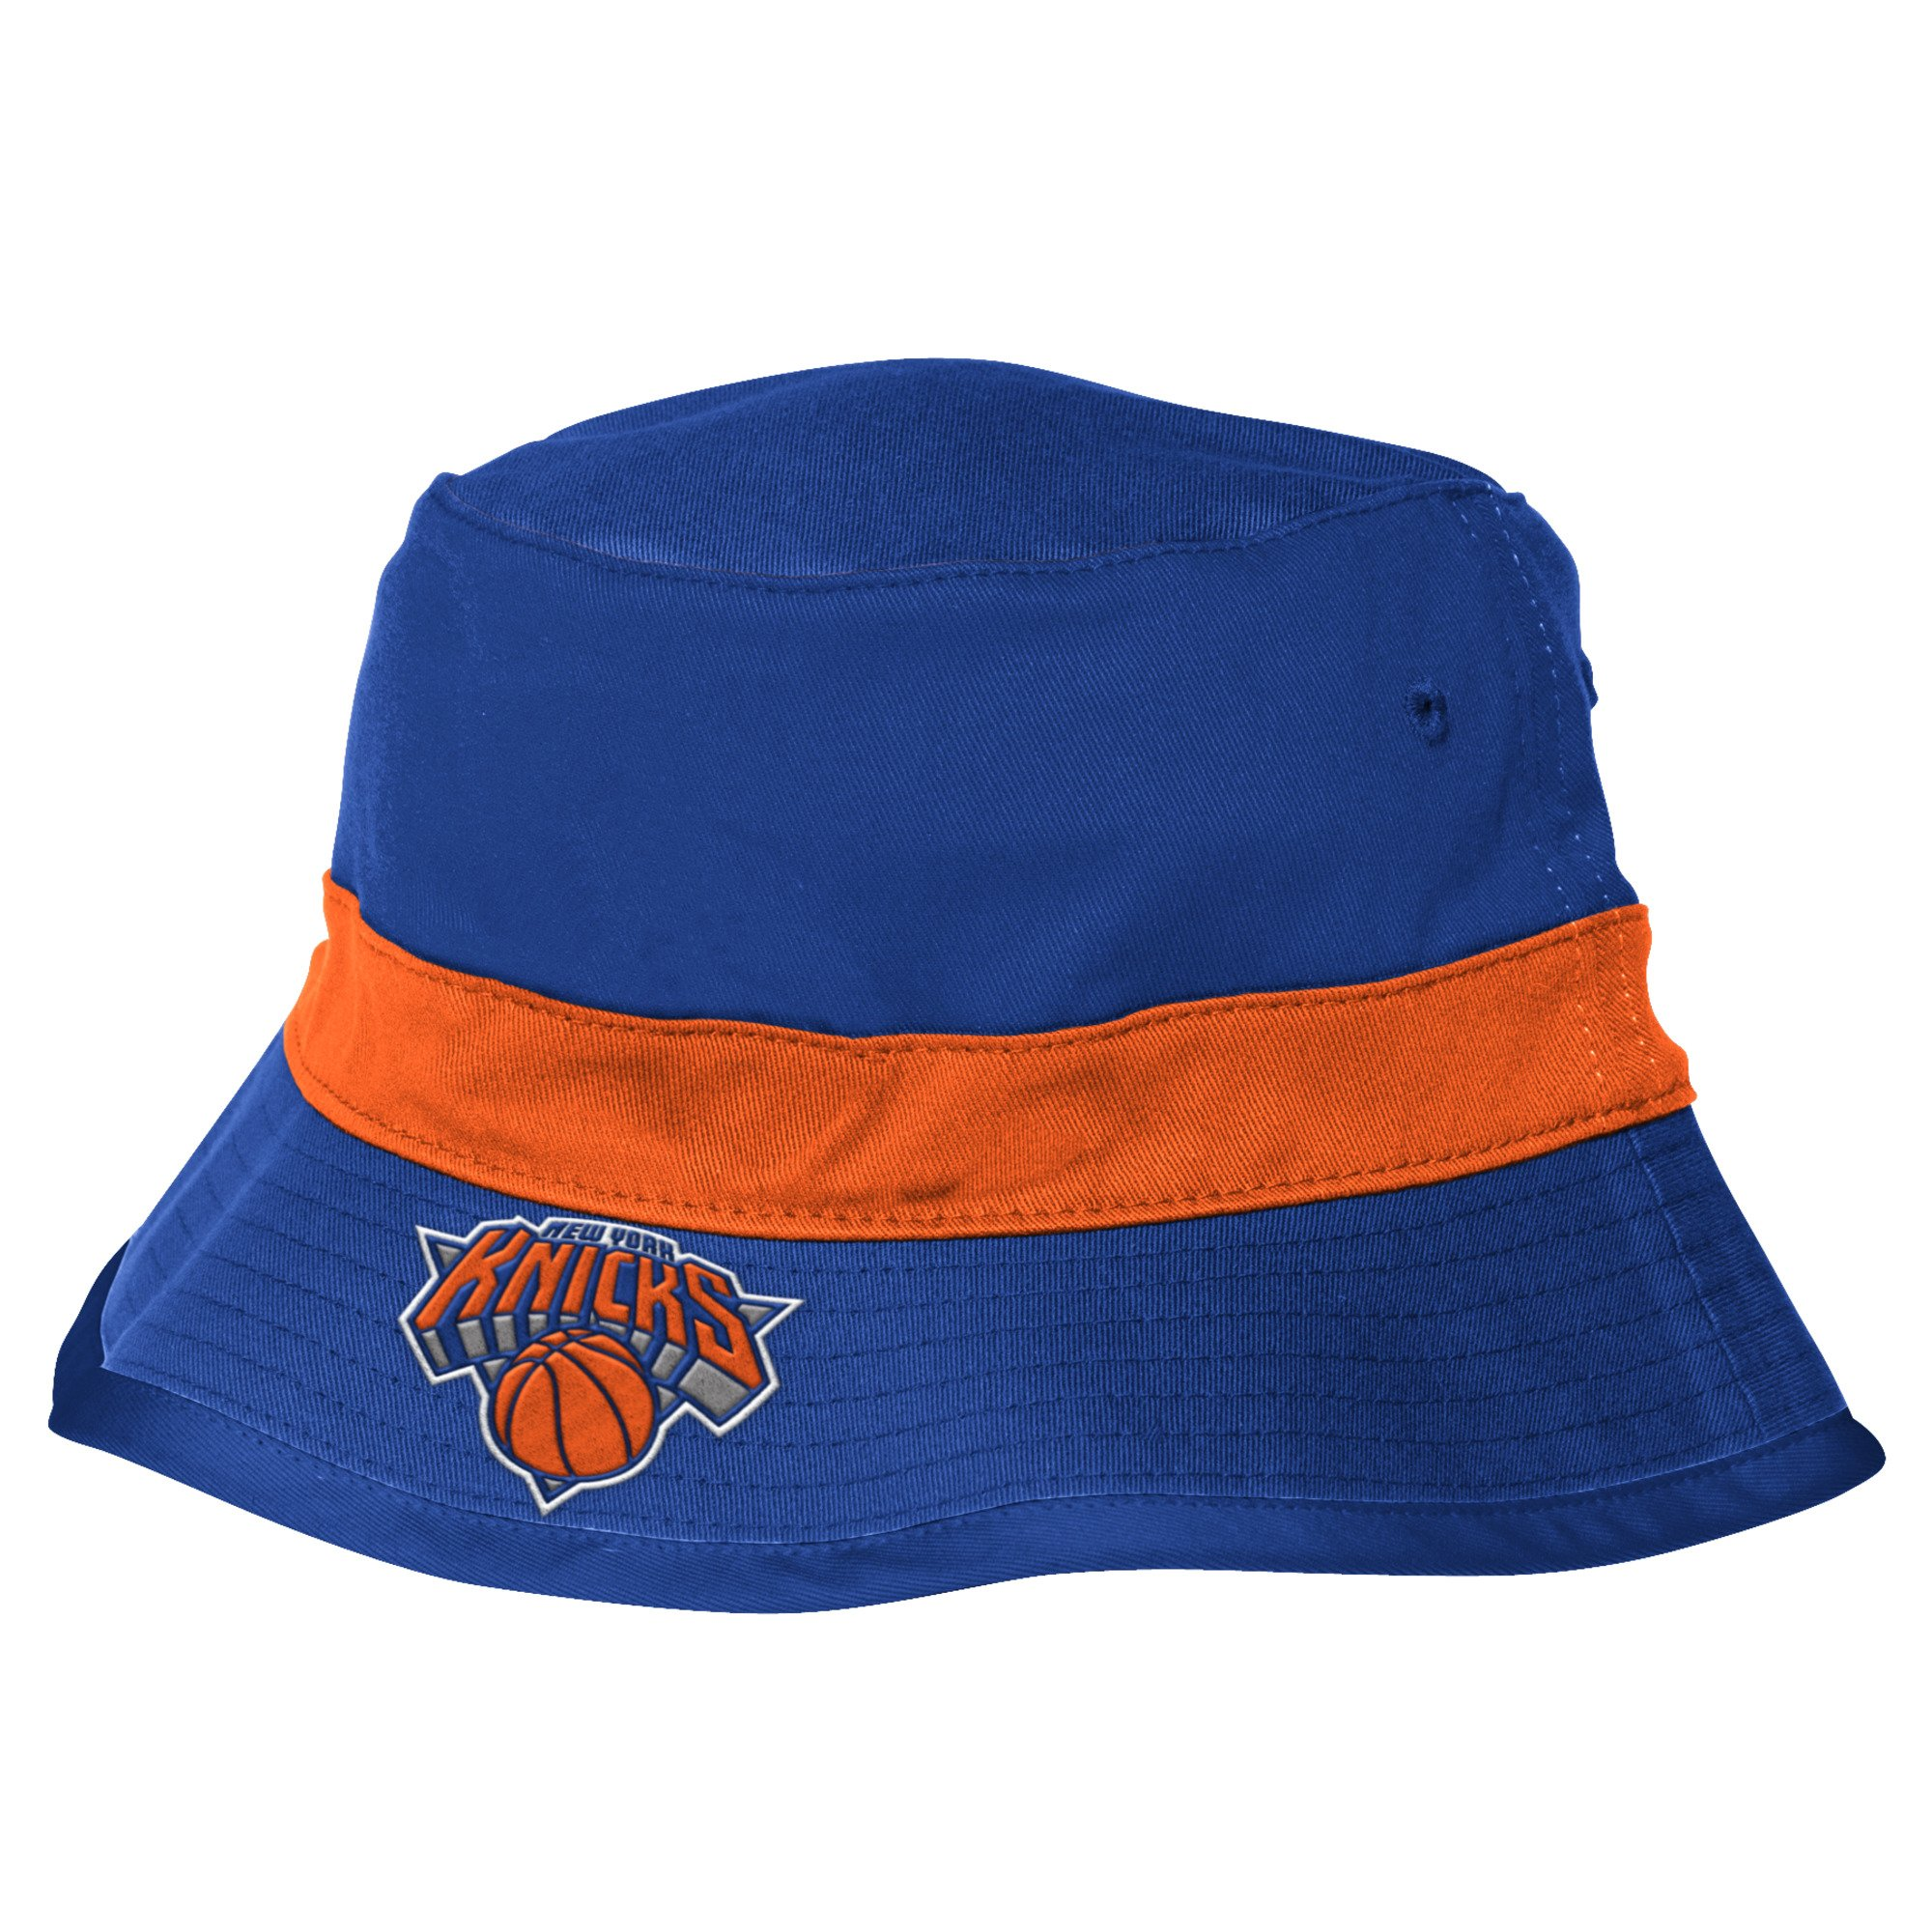 adidas NBA New York Knicks Men's Team Nation Bucket Hat, Blue, Large/X-Large